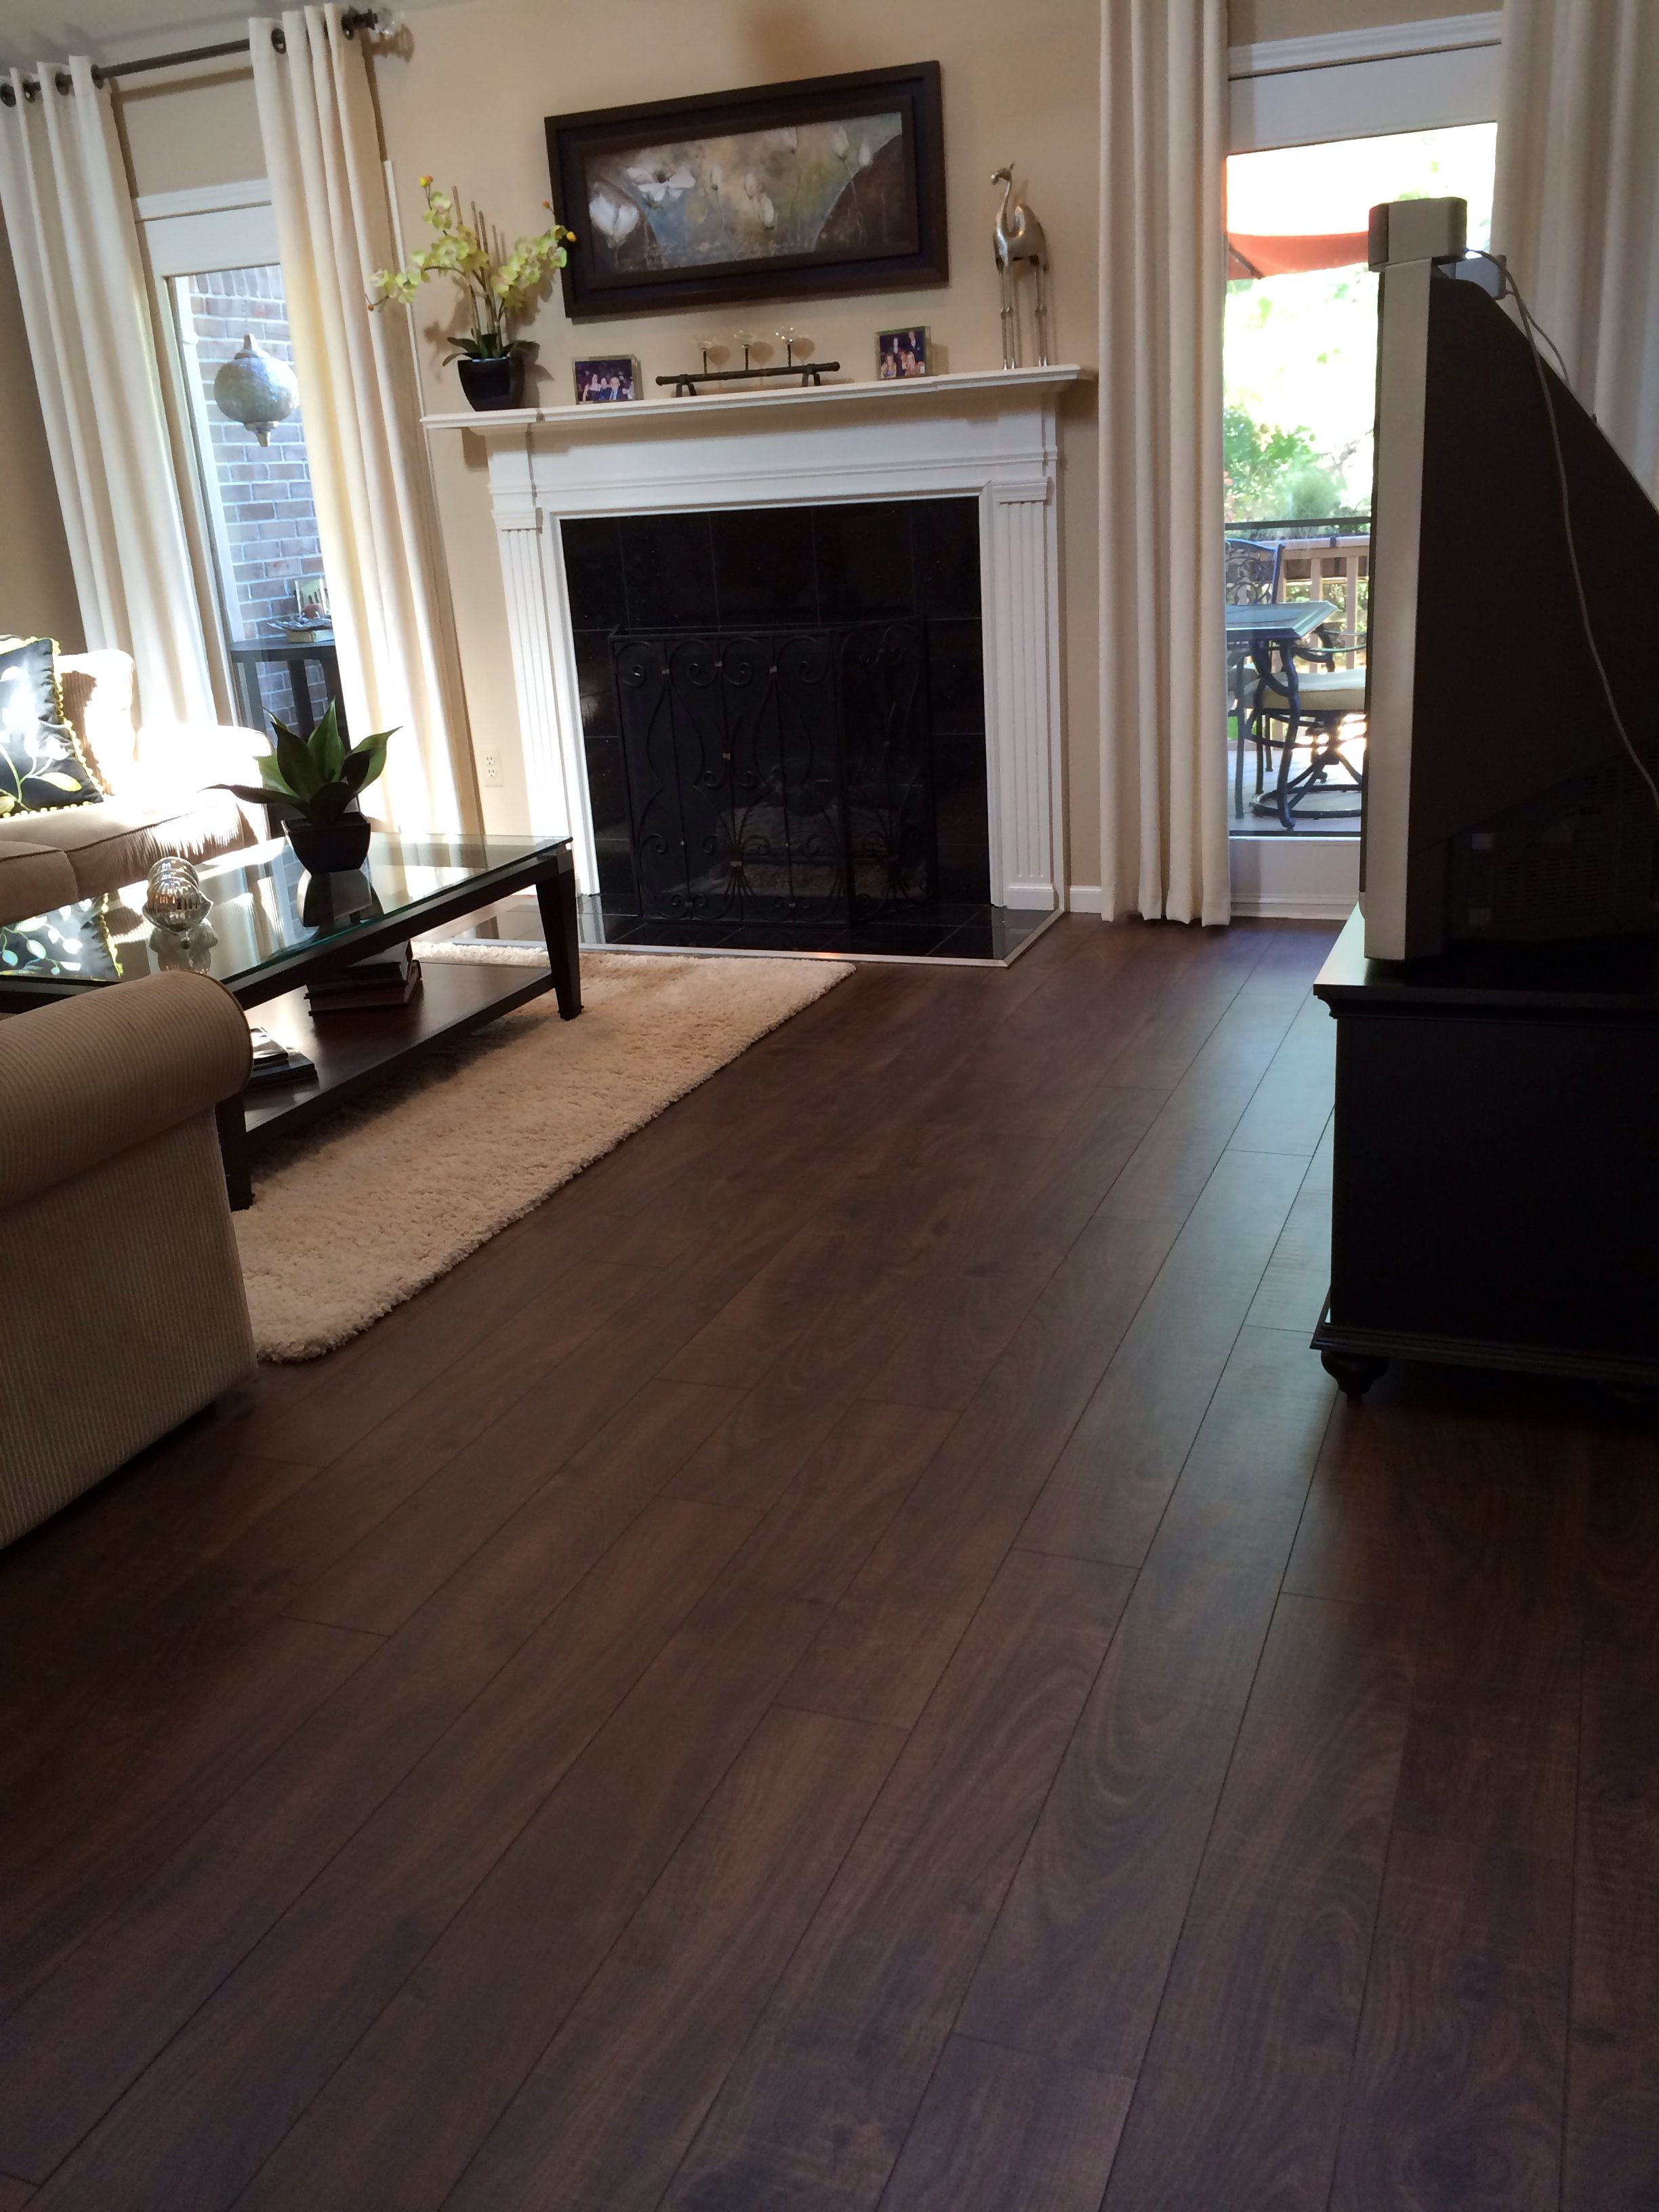 hardwood floor living room of pin by liliana legarreta on floors and stairs pinterest home throughout dark laminate kitchen flooring best of dark laminate kitchen flooring we are inspired by laminate floor ideas for more inspiration visit